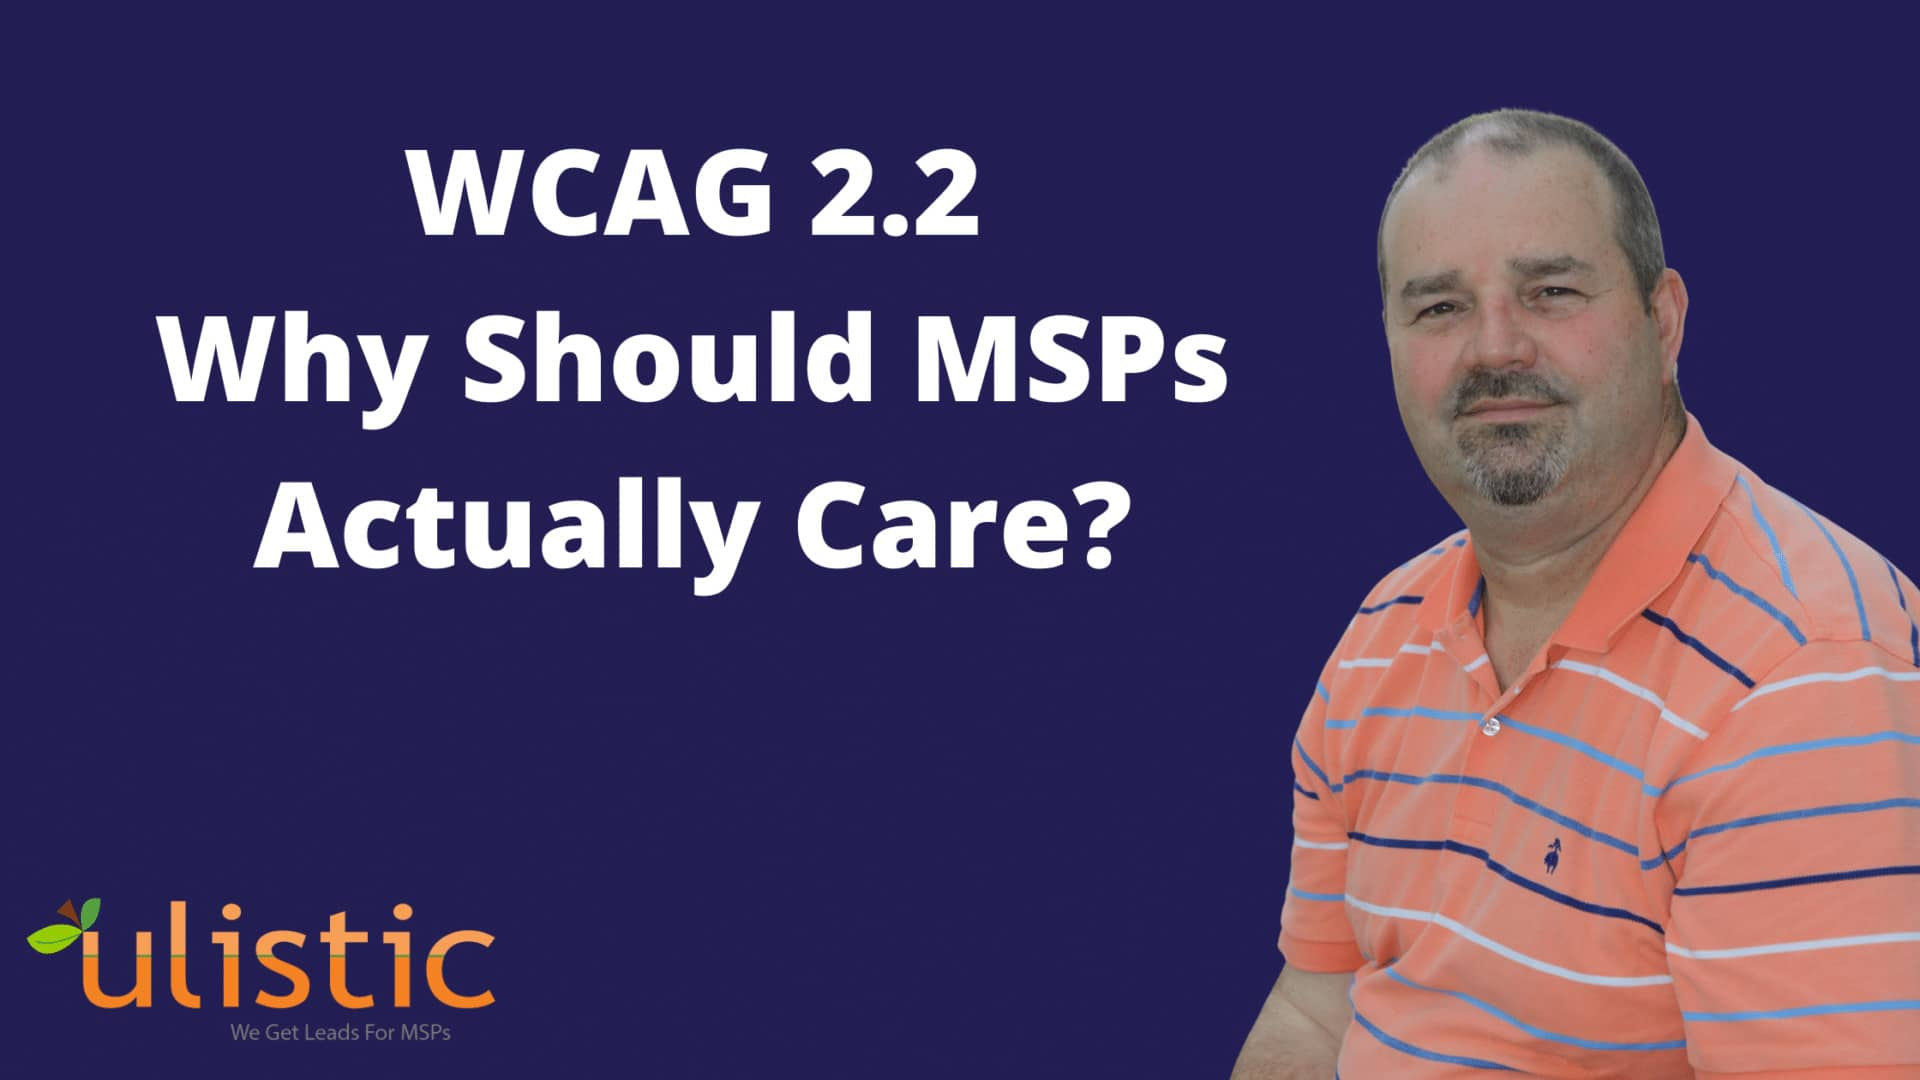 WCAG 2.2: Why Should MSPs Actually Care?